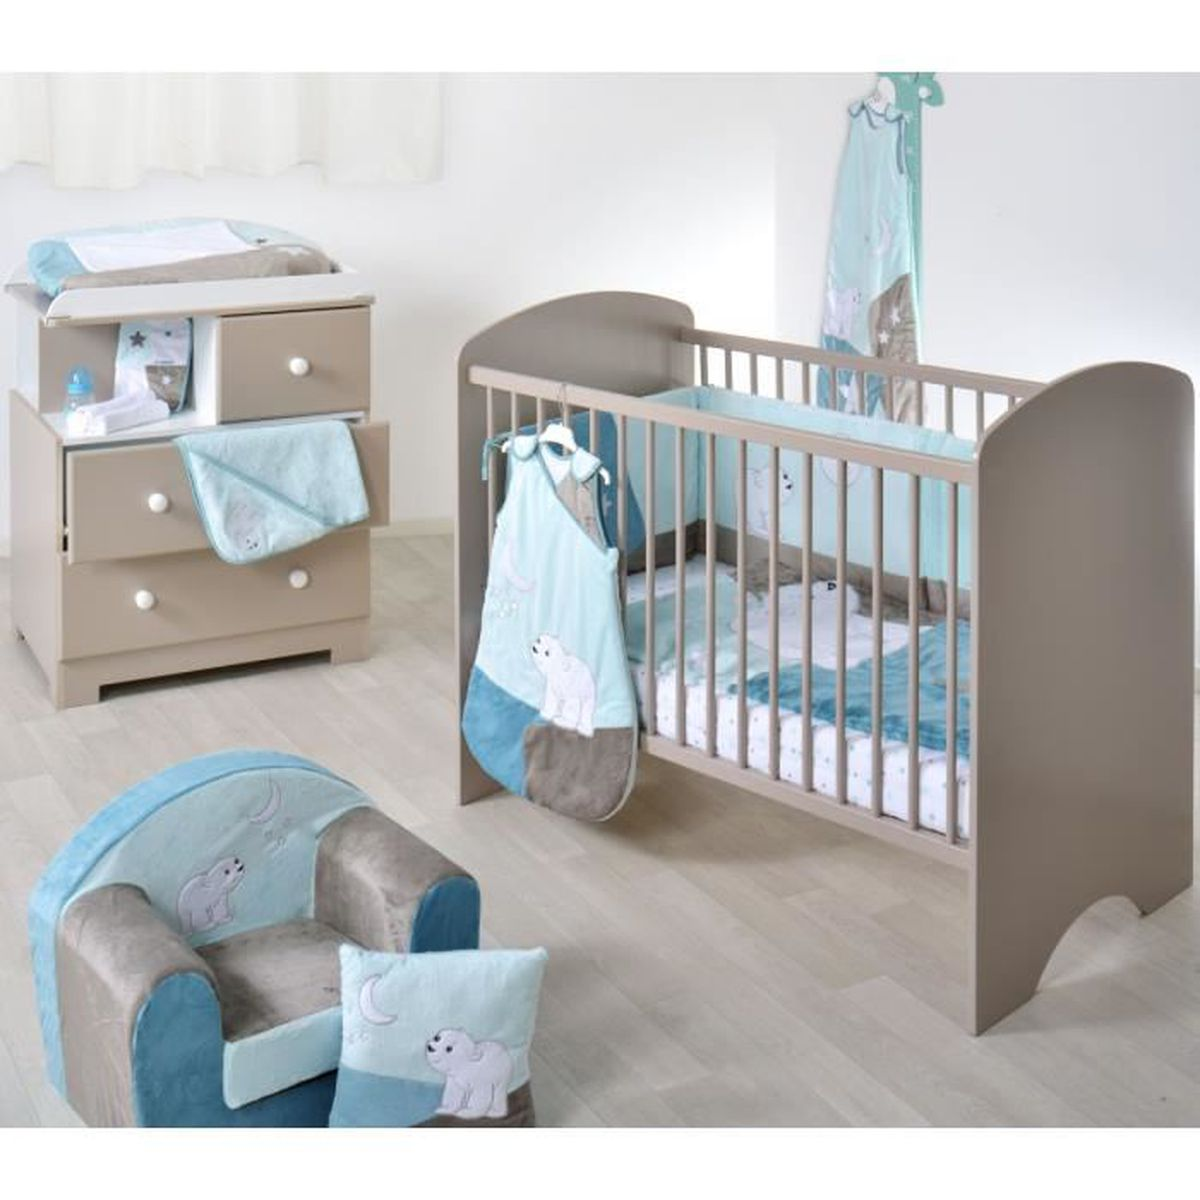 Chambre bébé sweety taupe 60x120 - Domiva - Achat / Vente ...